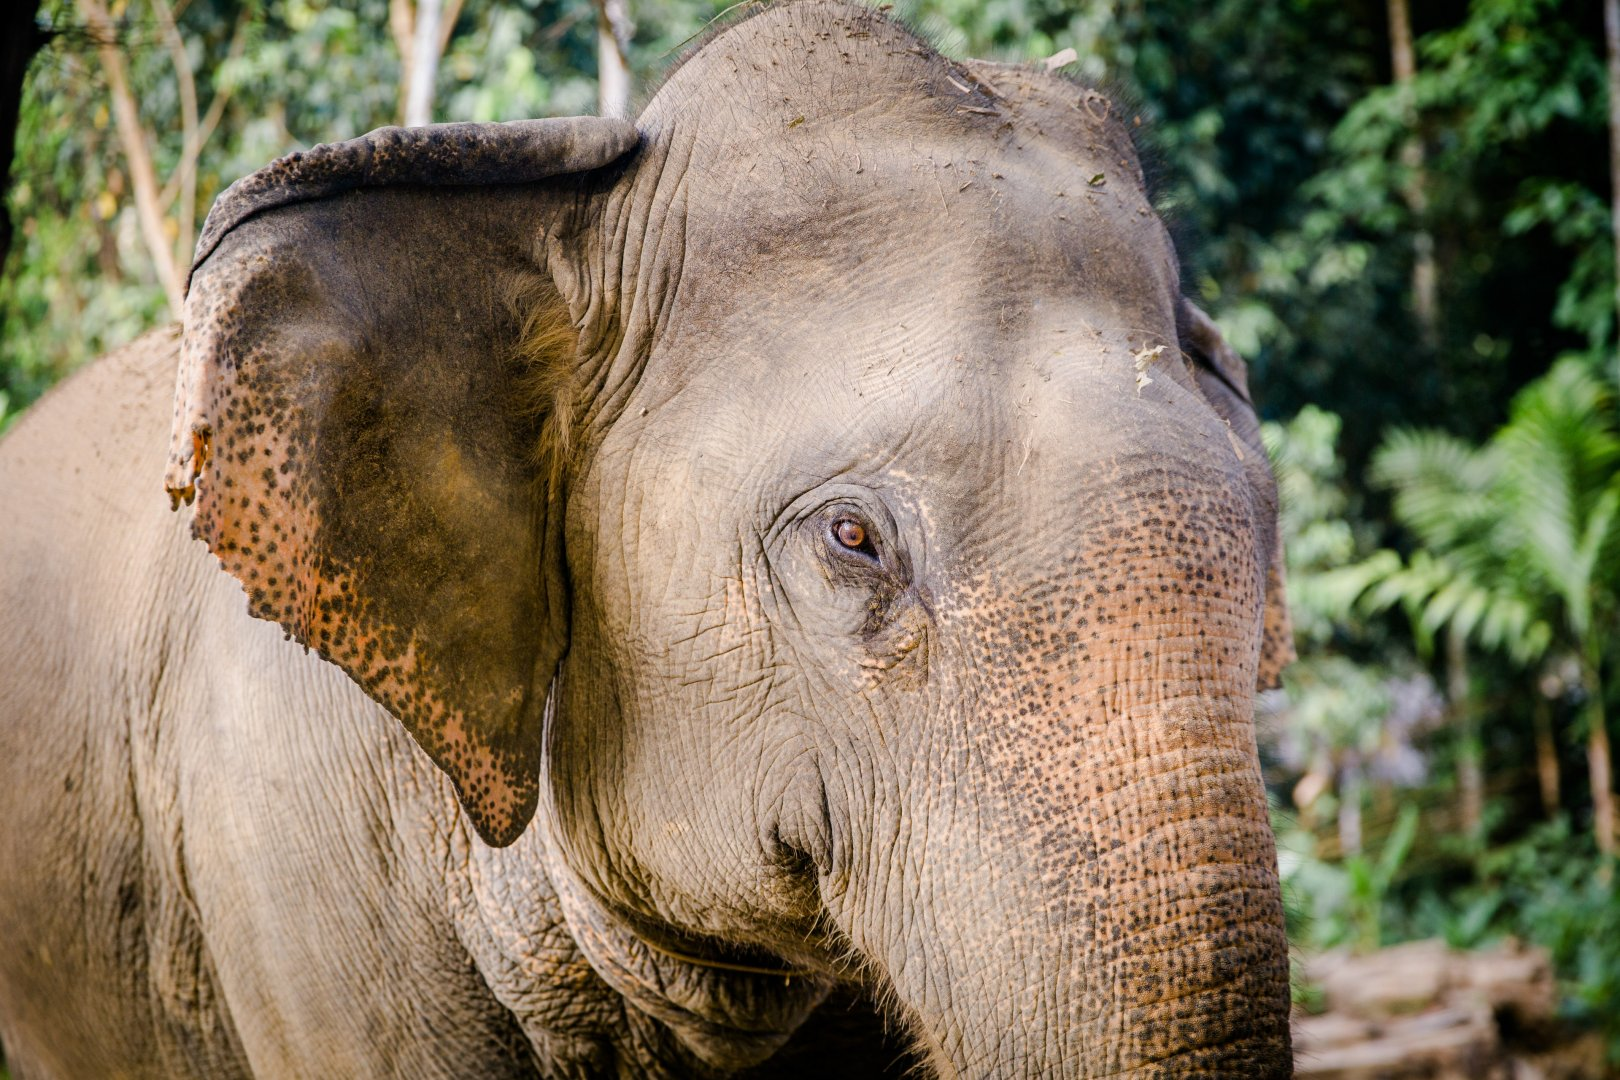 Elephants and Mammoths Terrestrial animal Vertebrate Indian elephant Wildlife Mammal Skin Zoo Snout Nature reserve African elephant Eye Close-up Working animal Grass Wrinkle Adaptation Organism Jungle Temple Tree Safari Photography Tusk National park Recreation Forest Plant Fawn Ear